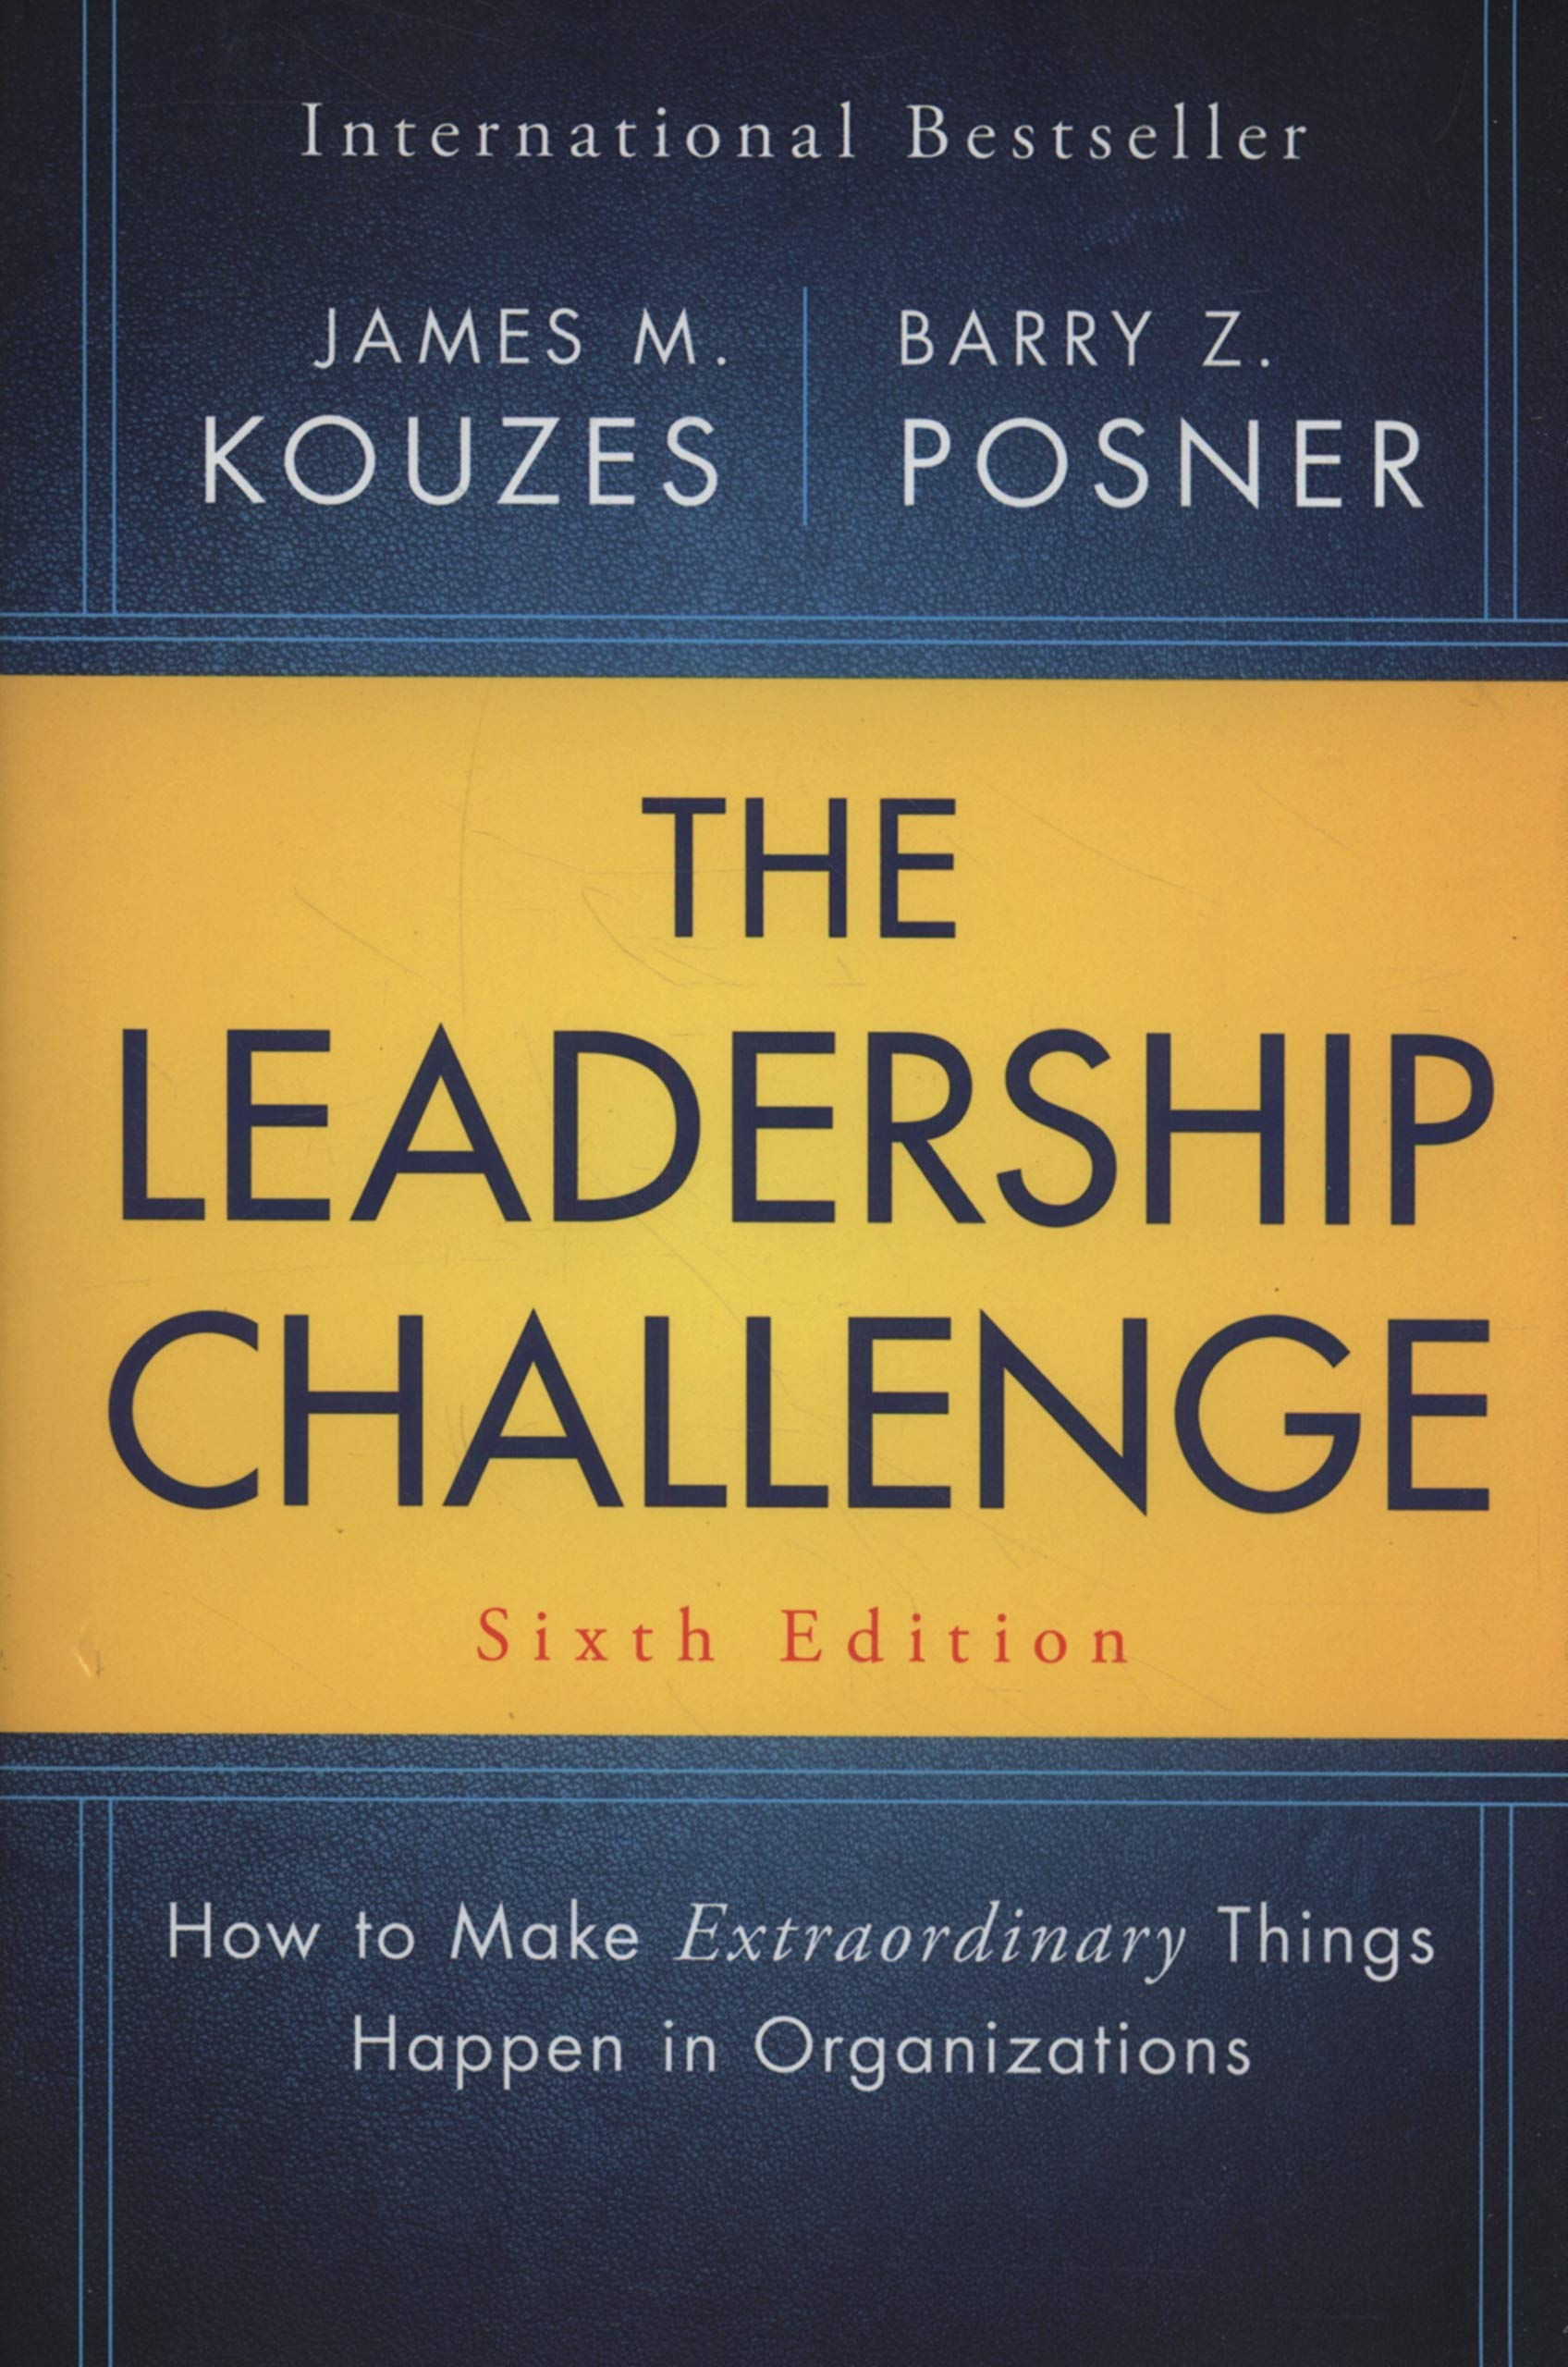 The Leadership Challenge 5th Edition Pdf